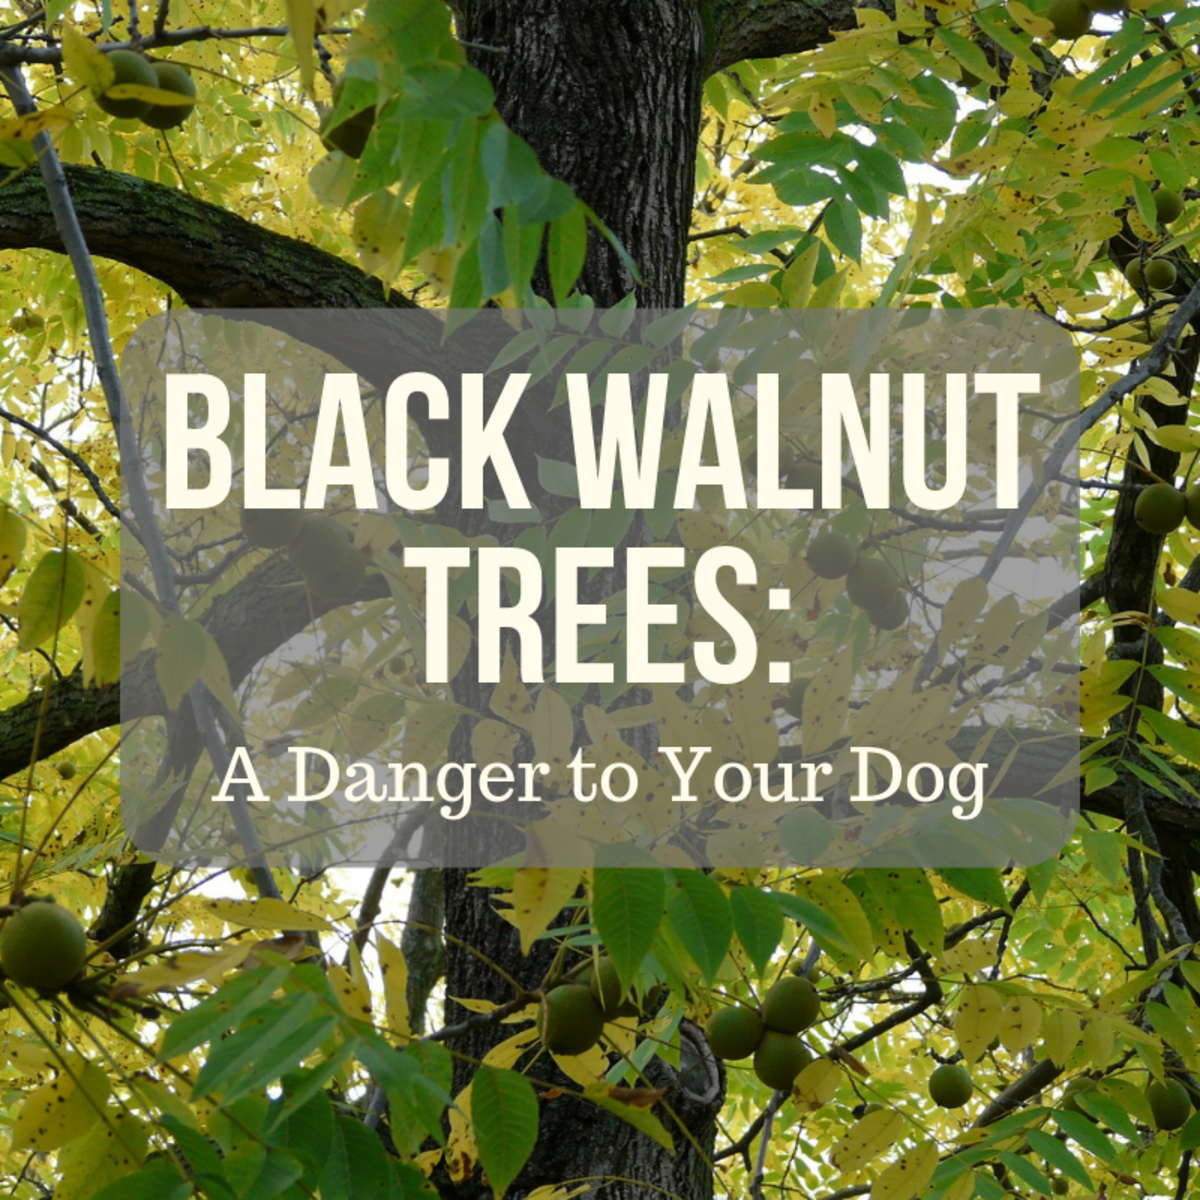 Black walnut trees can harm or even kill your canine companion.